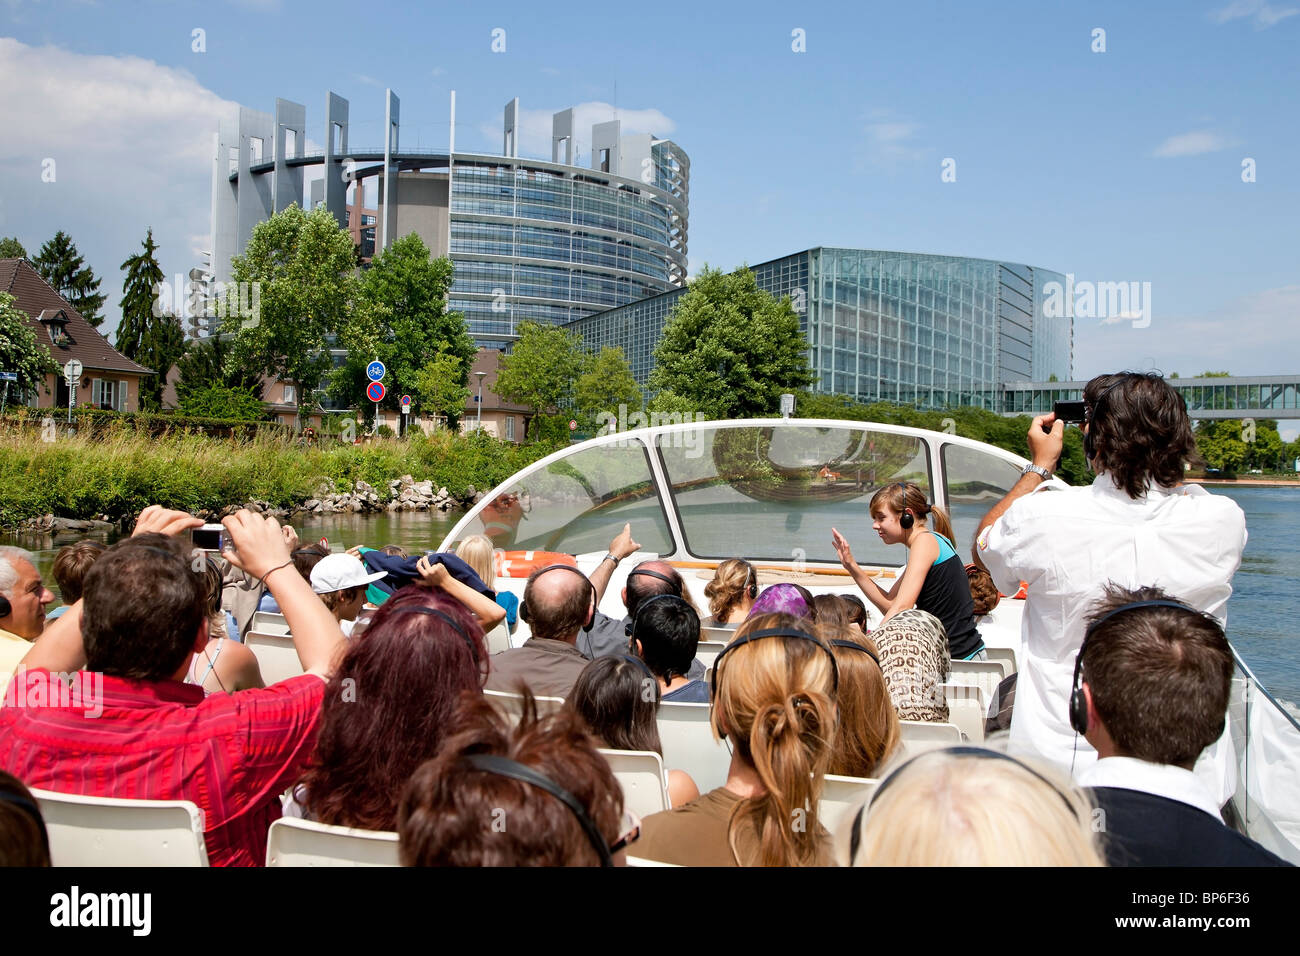 Boat trip along the river at the European parliament in Strasbourg, France Stock Photo